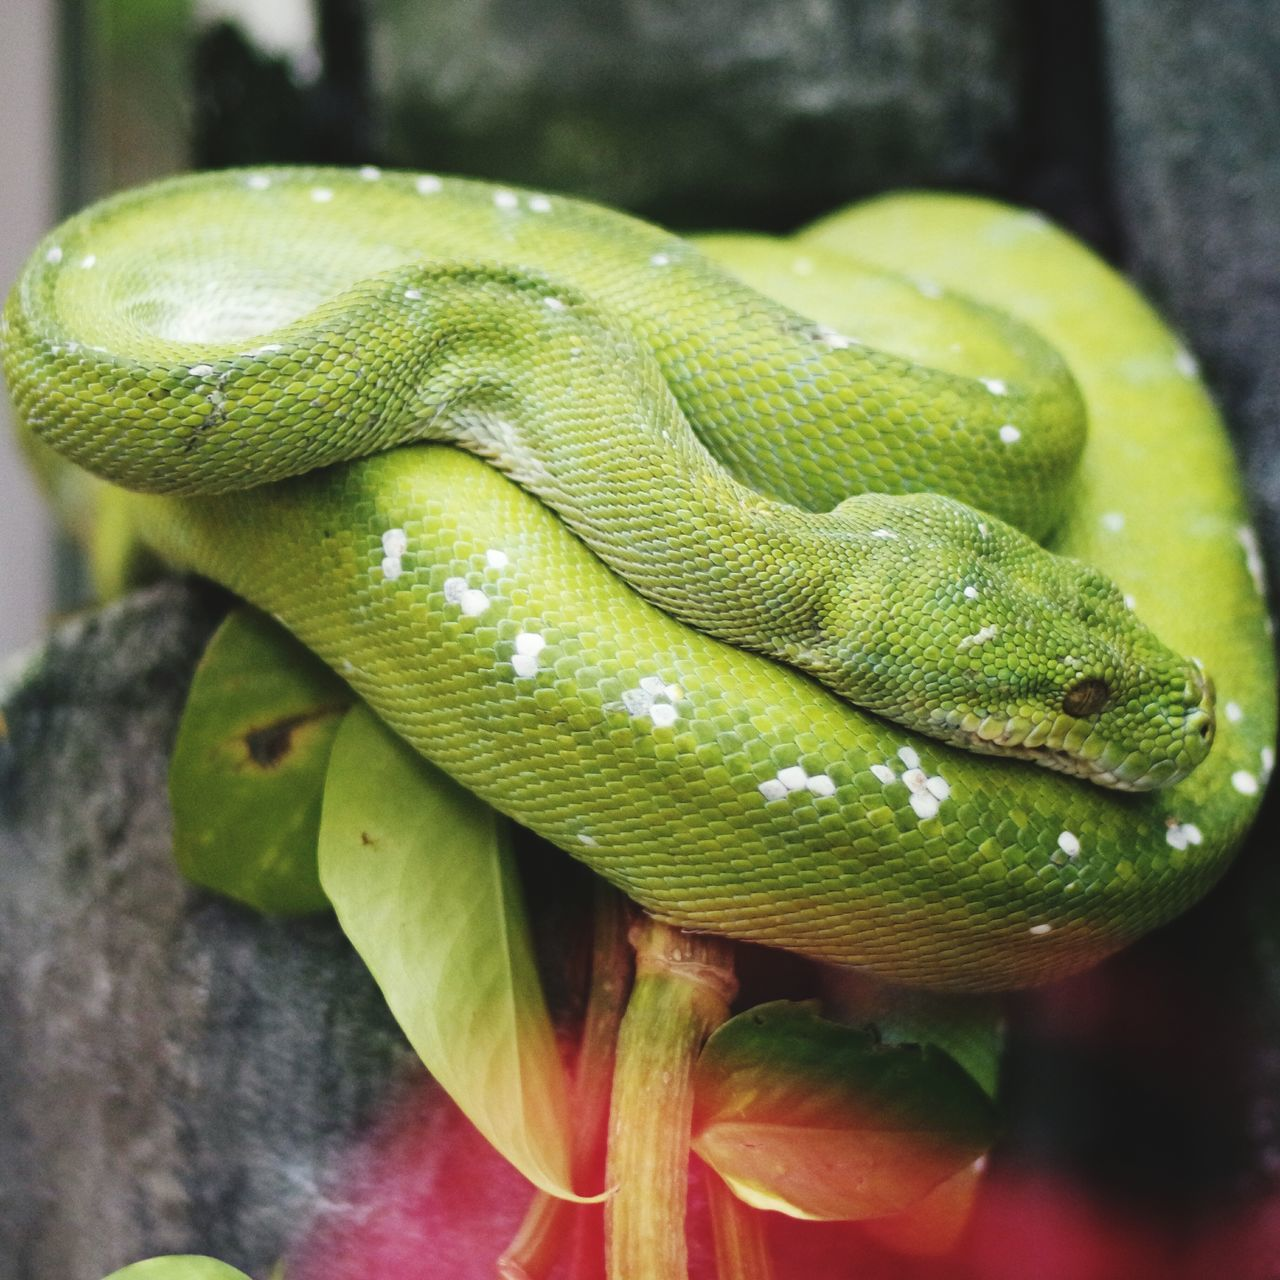 animal themes, animals in the wild, one animal, snake, reptile, animal wildlife, green color, close-up, day, nature, outdoors, animal scale, no people, focus on foreground